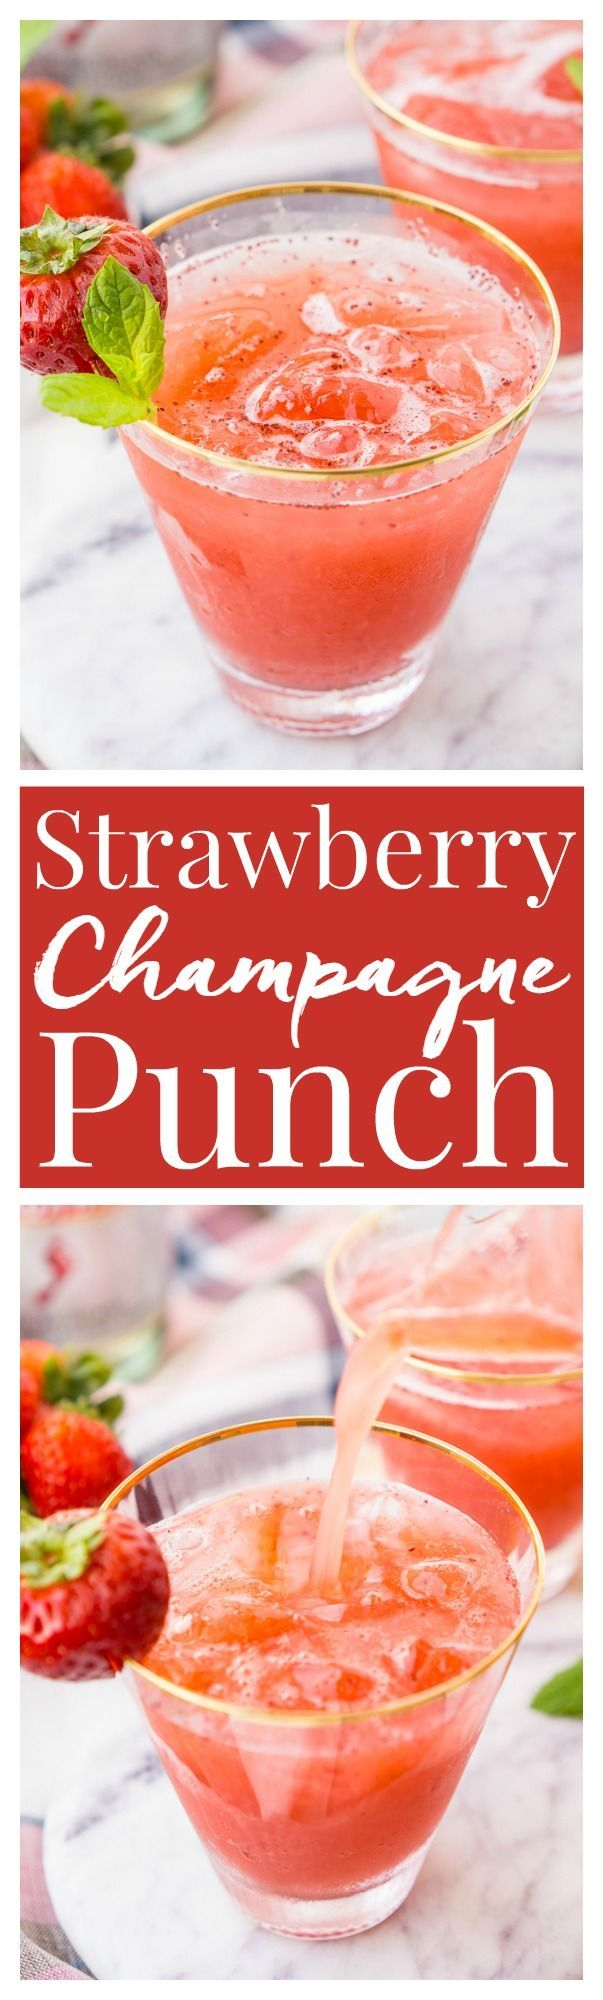 Strawberry Champagne Punch